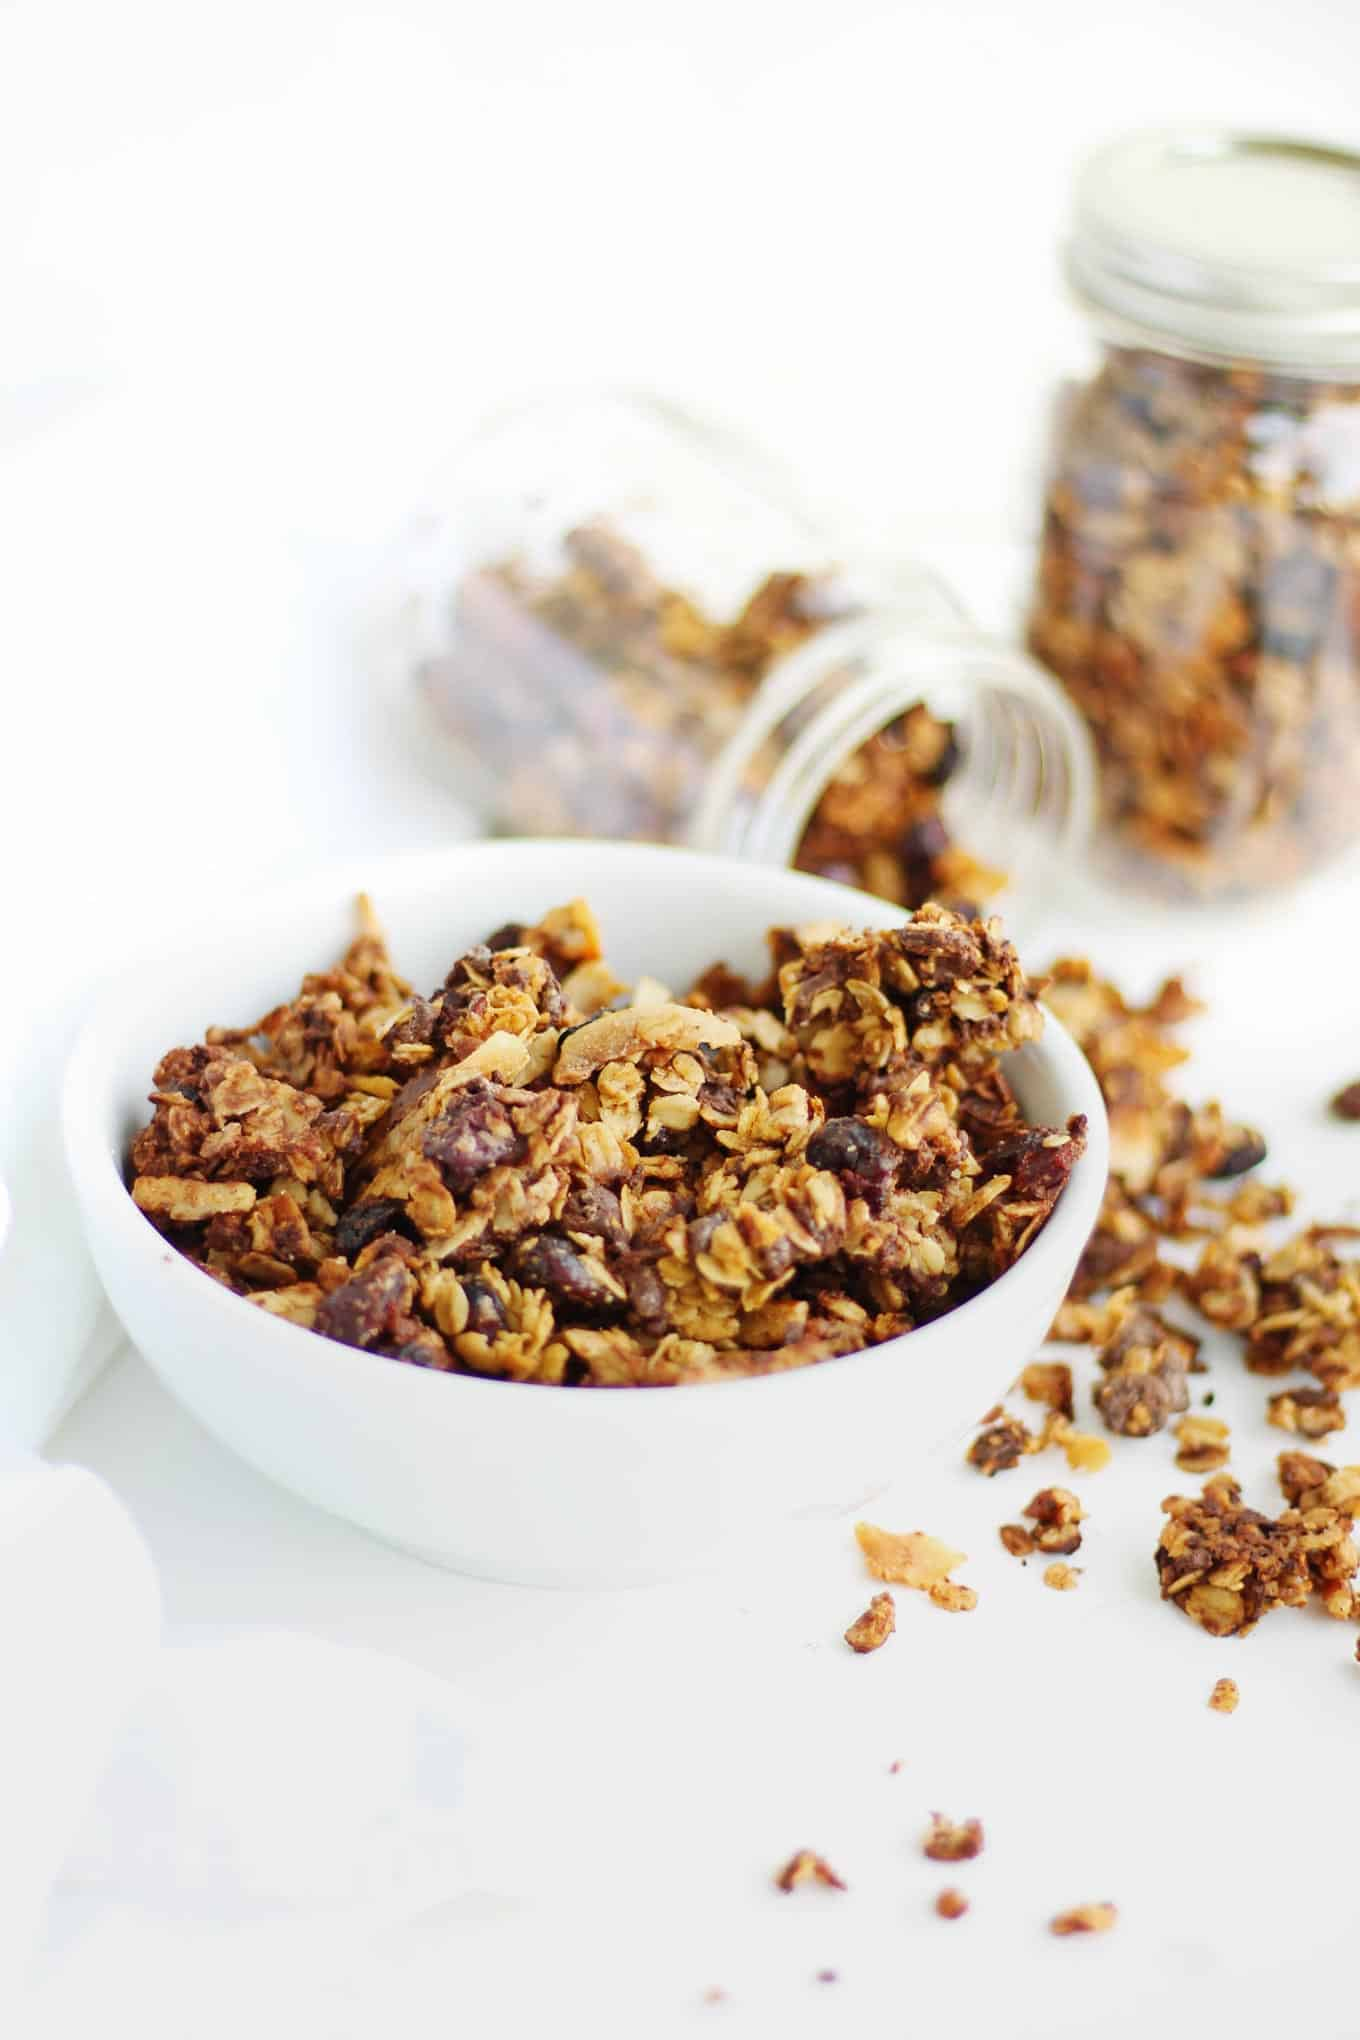 This granola tastes like oatmeal cookies! Super easy recipe for delicious coconut granola with cranberries and dark chocolate. So much better than store bought! // Rhubarbarians // #granola #oatmealcookies #breakfast #homemade #recipe #oatmeal